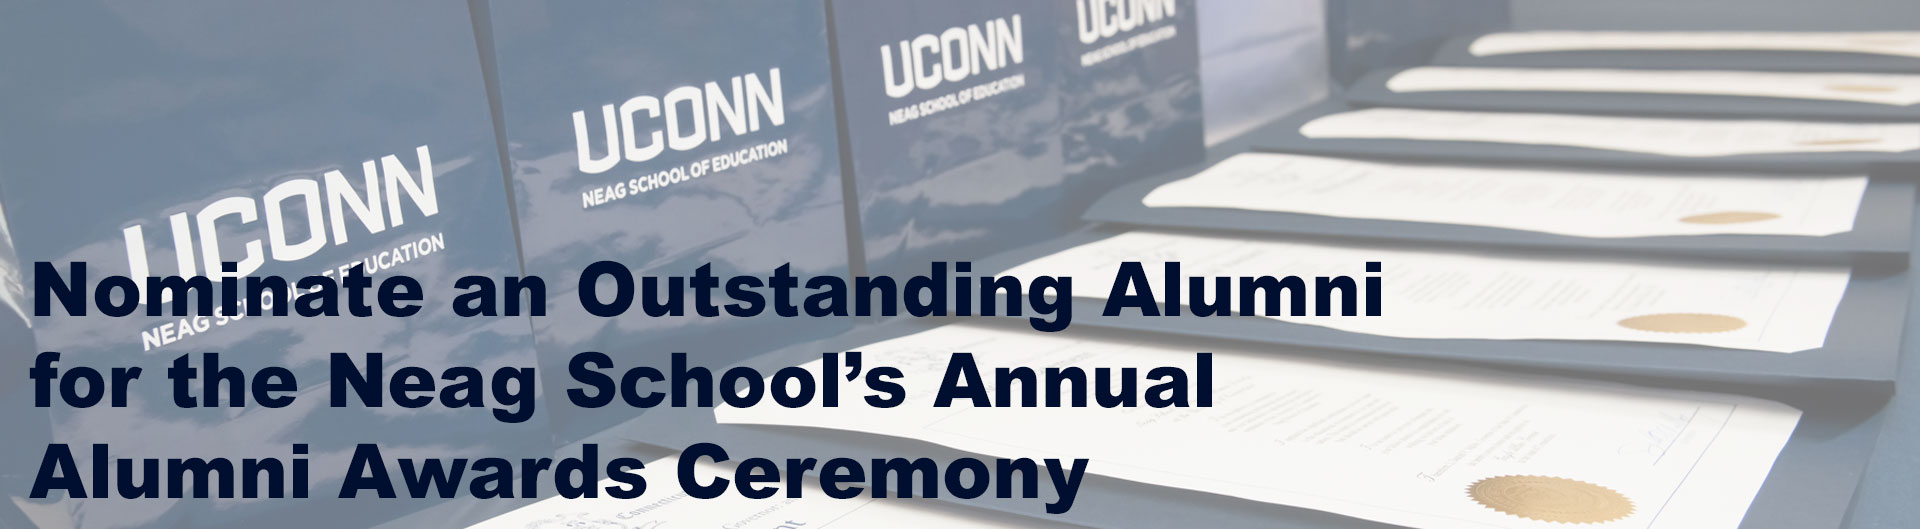 List of certificates. Text reads: Nominate an Outstanding Alumni for the Neag School's Annual Alumni Awards Ceremony